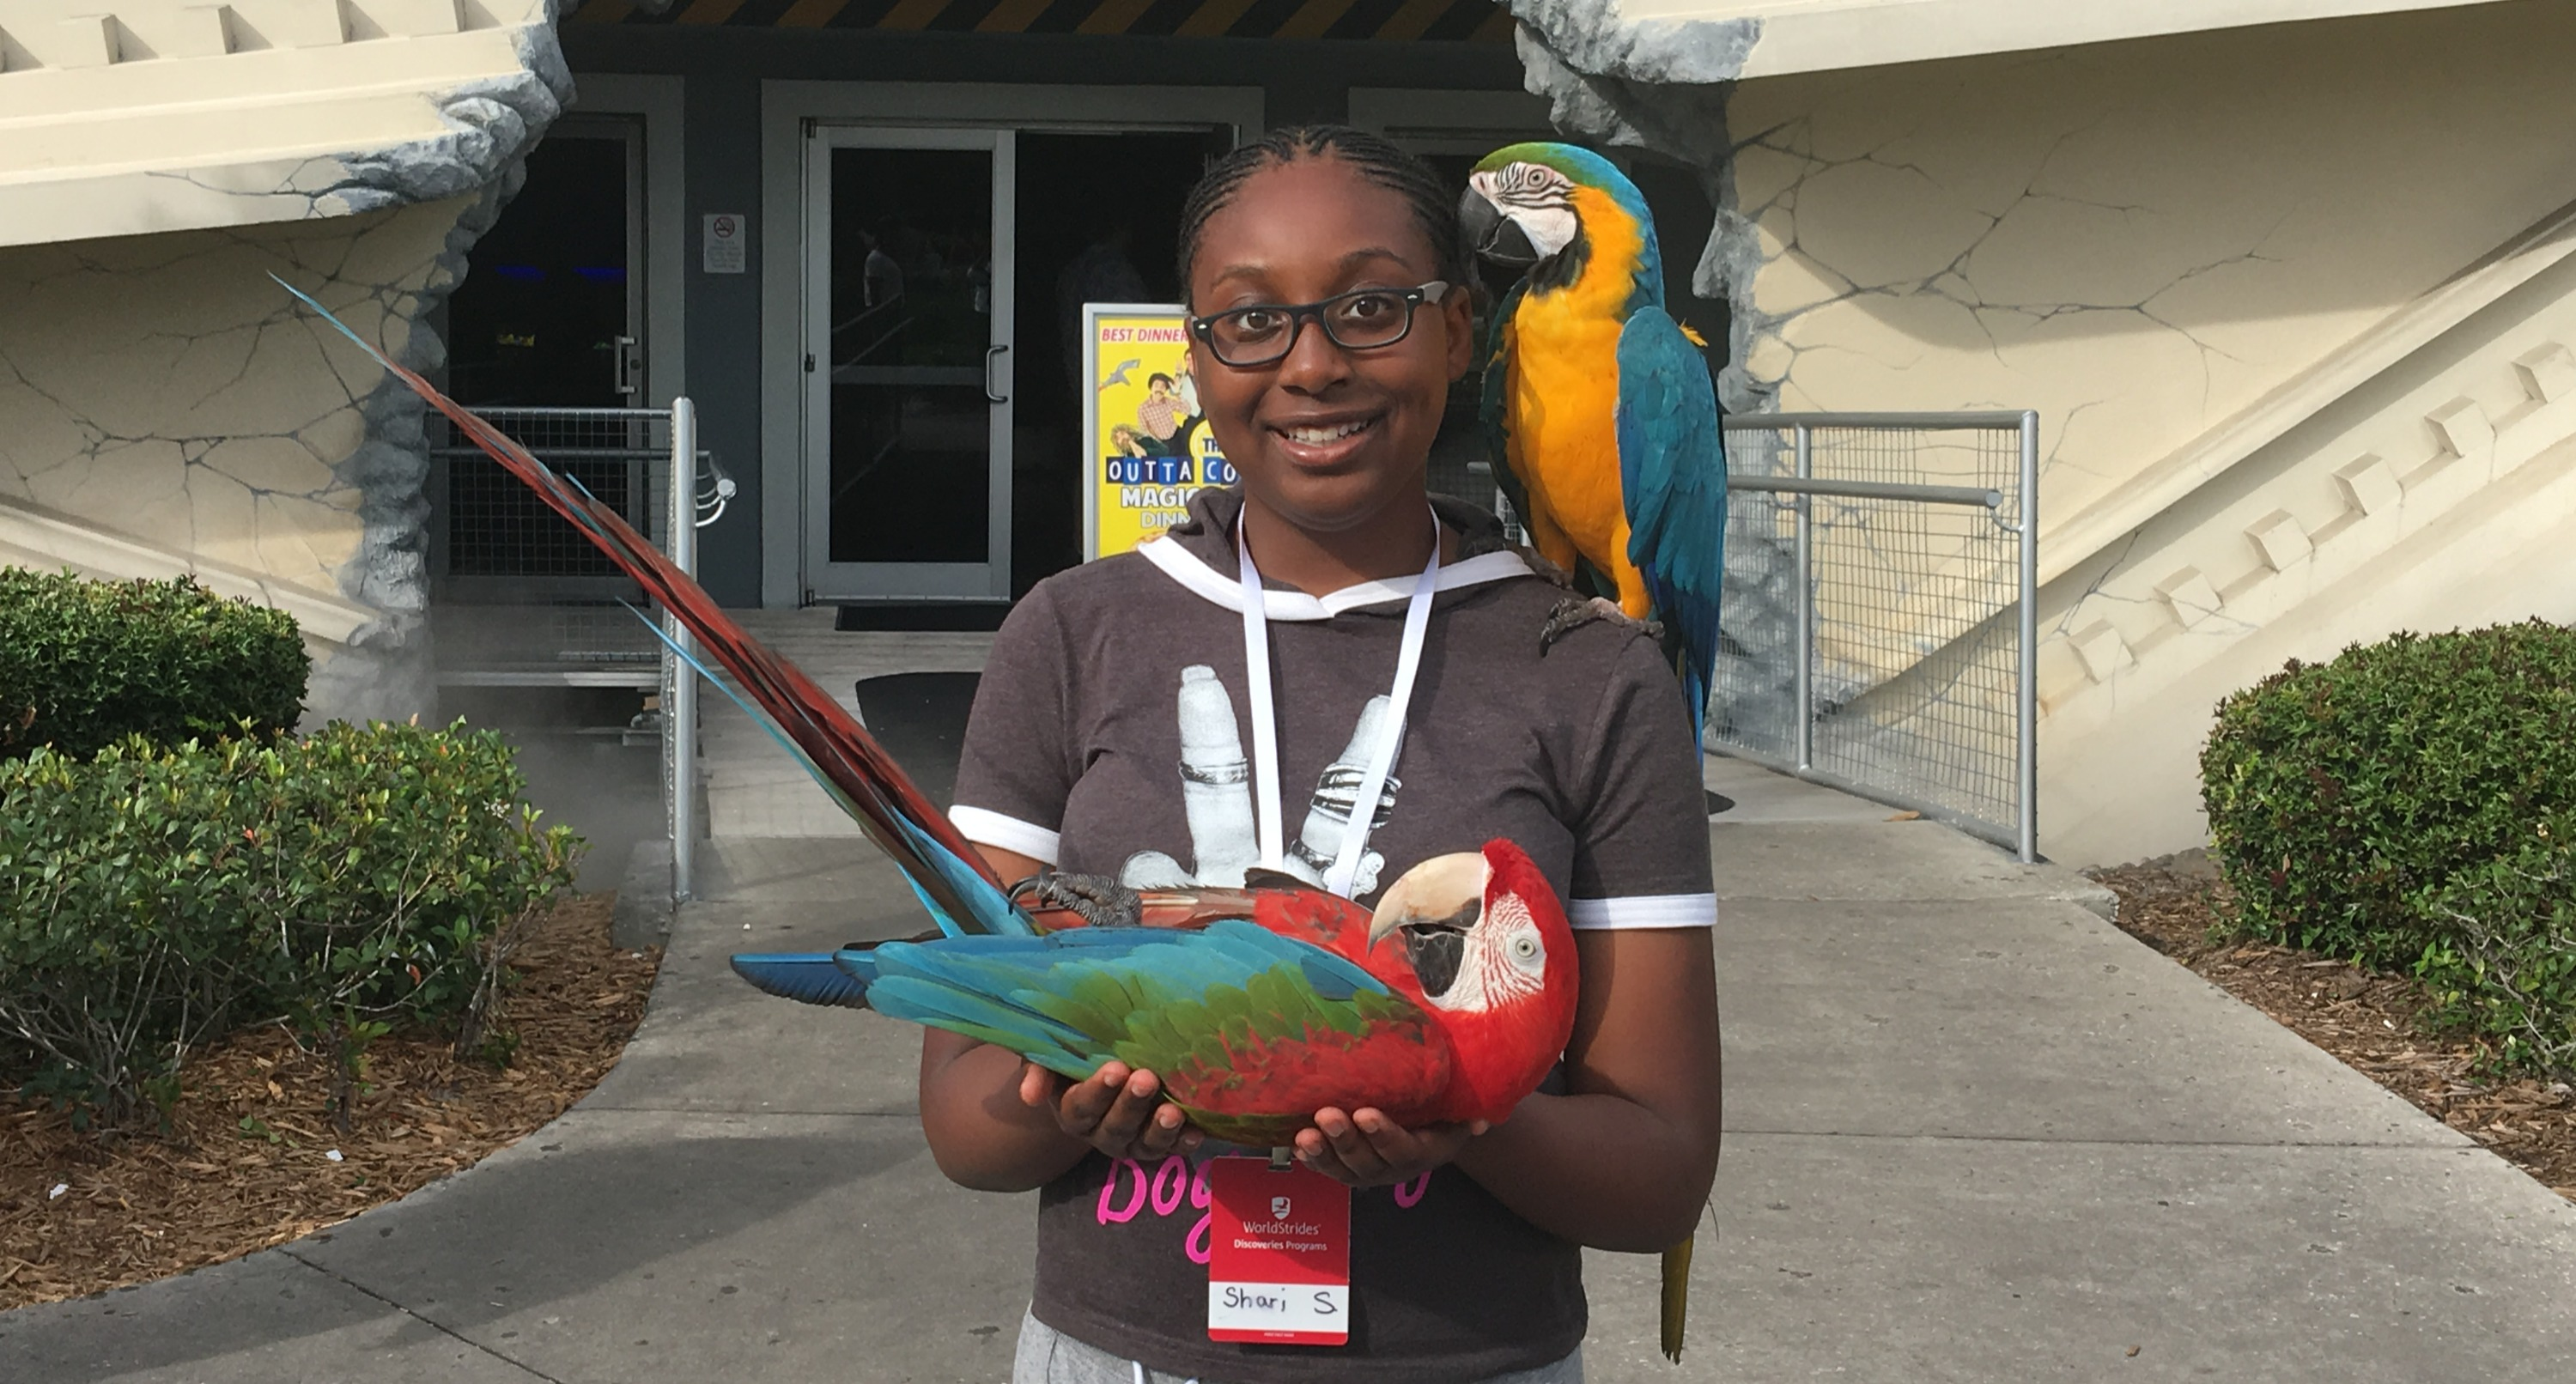 Shari%20-%20Parrots%2C%20Florida_edited.